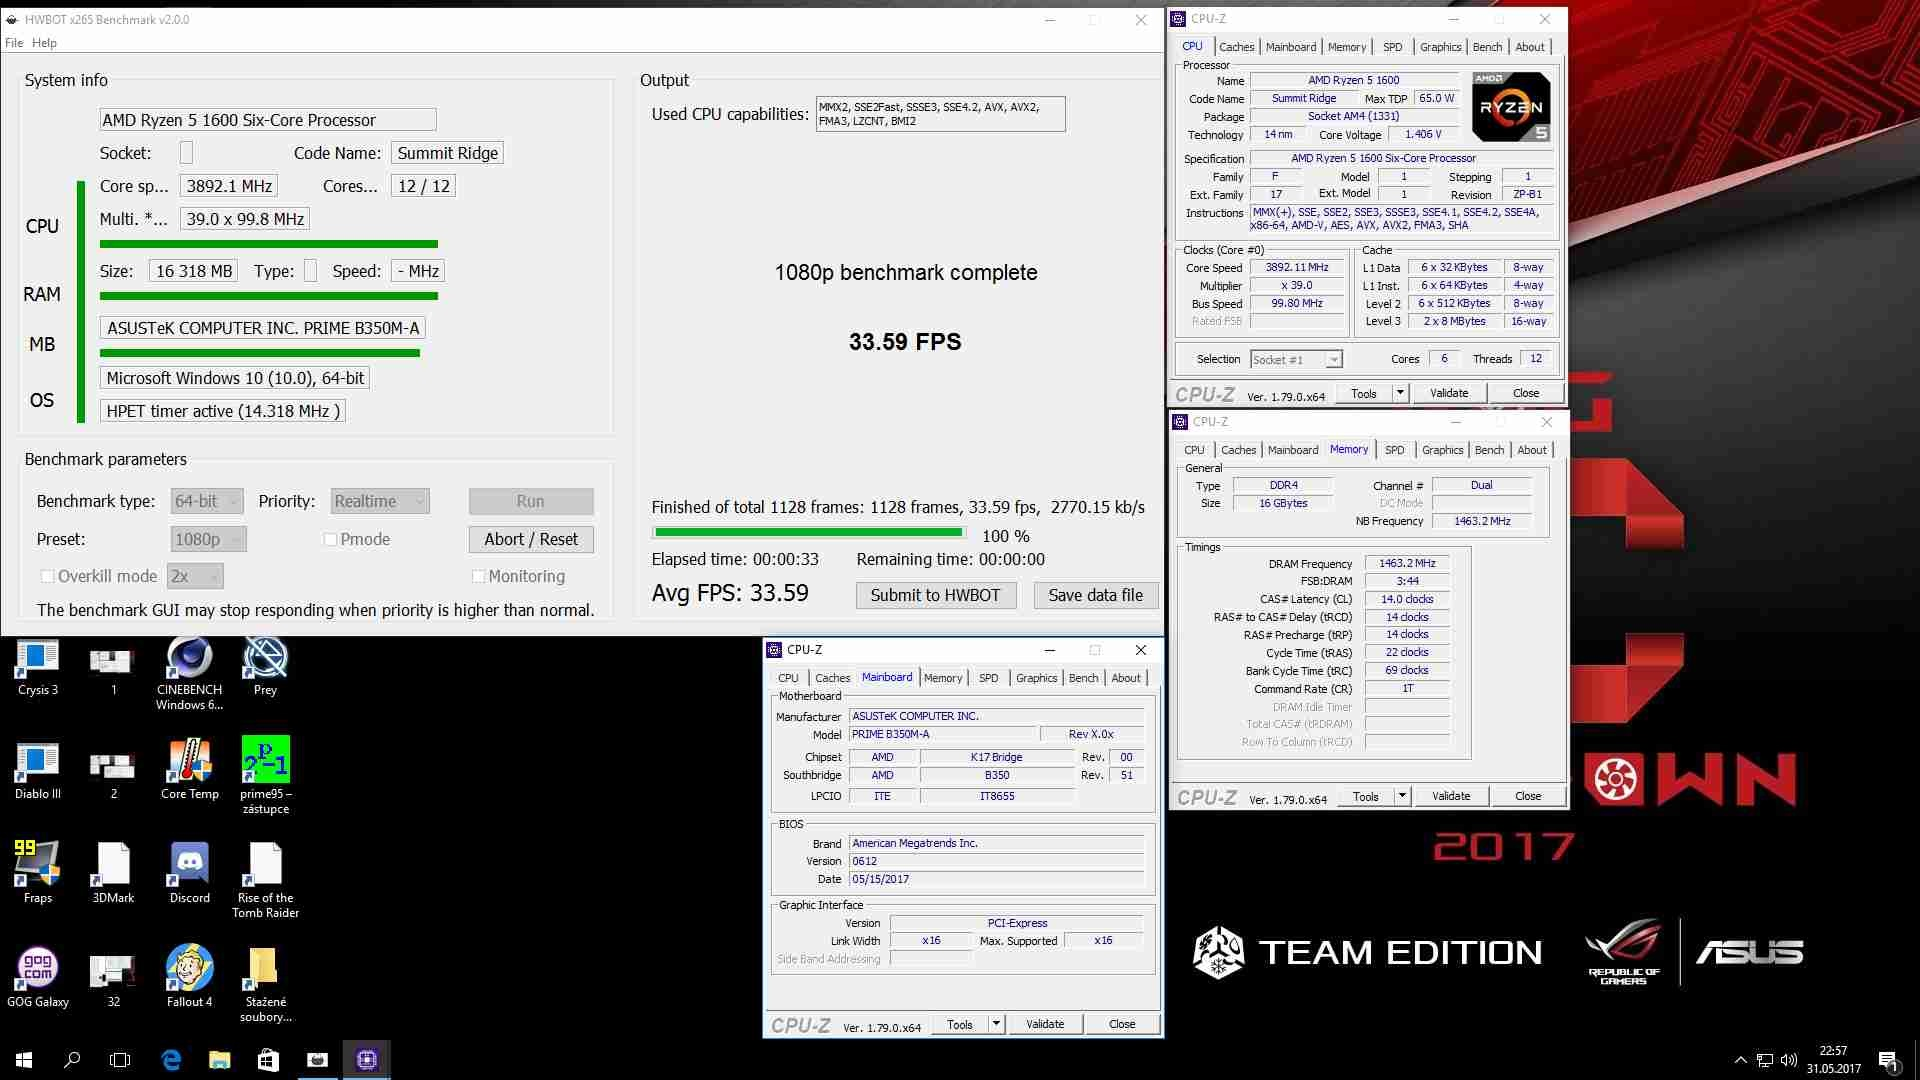 HWBOT H265; test with Ryzen 5 1600 on ASUS B350M-A PRIME